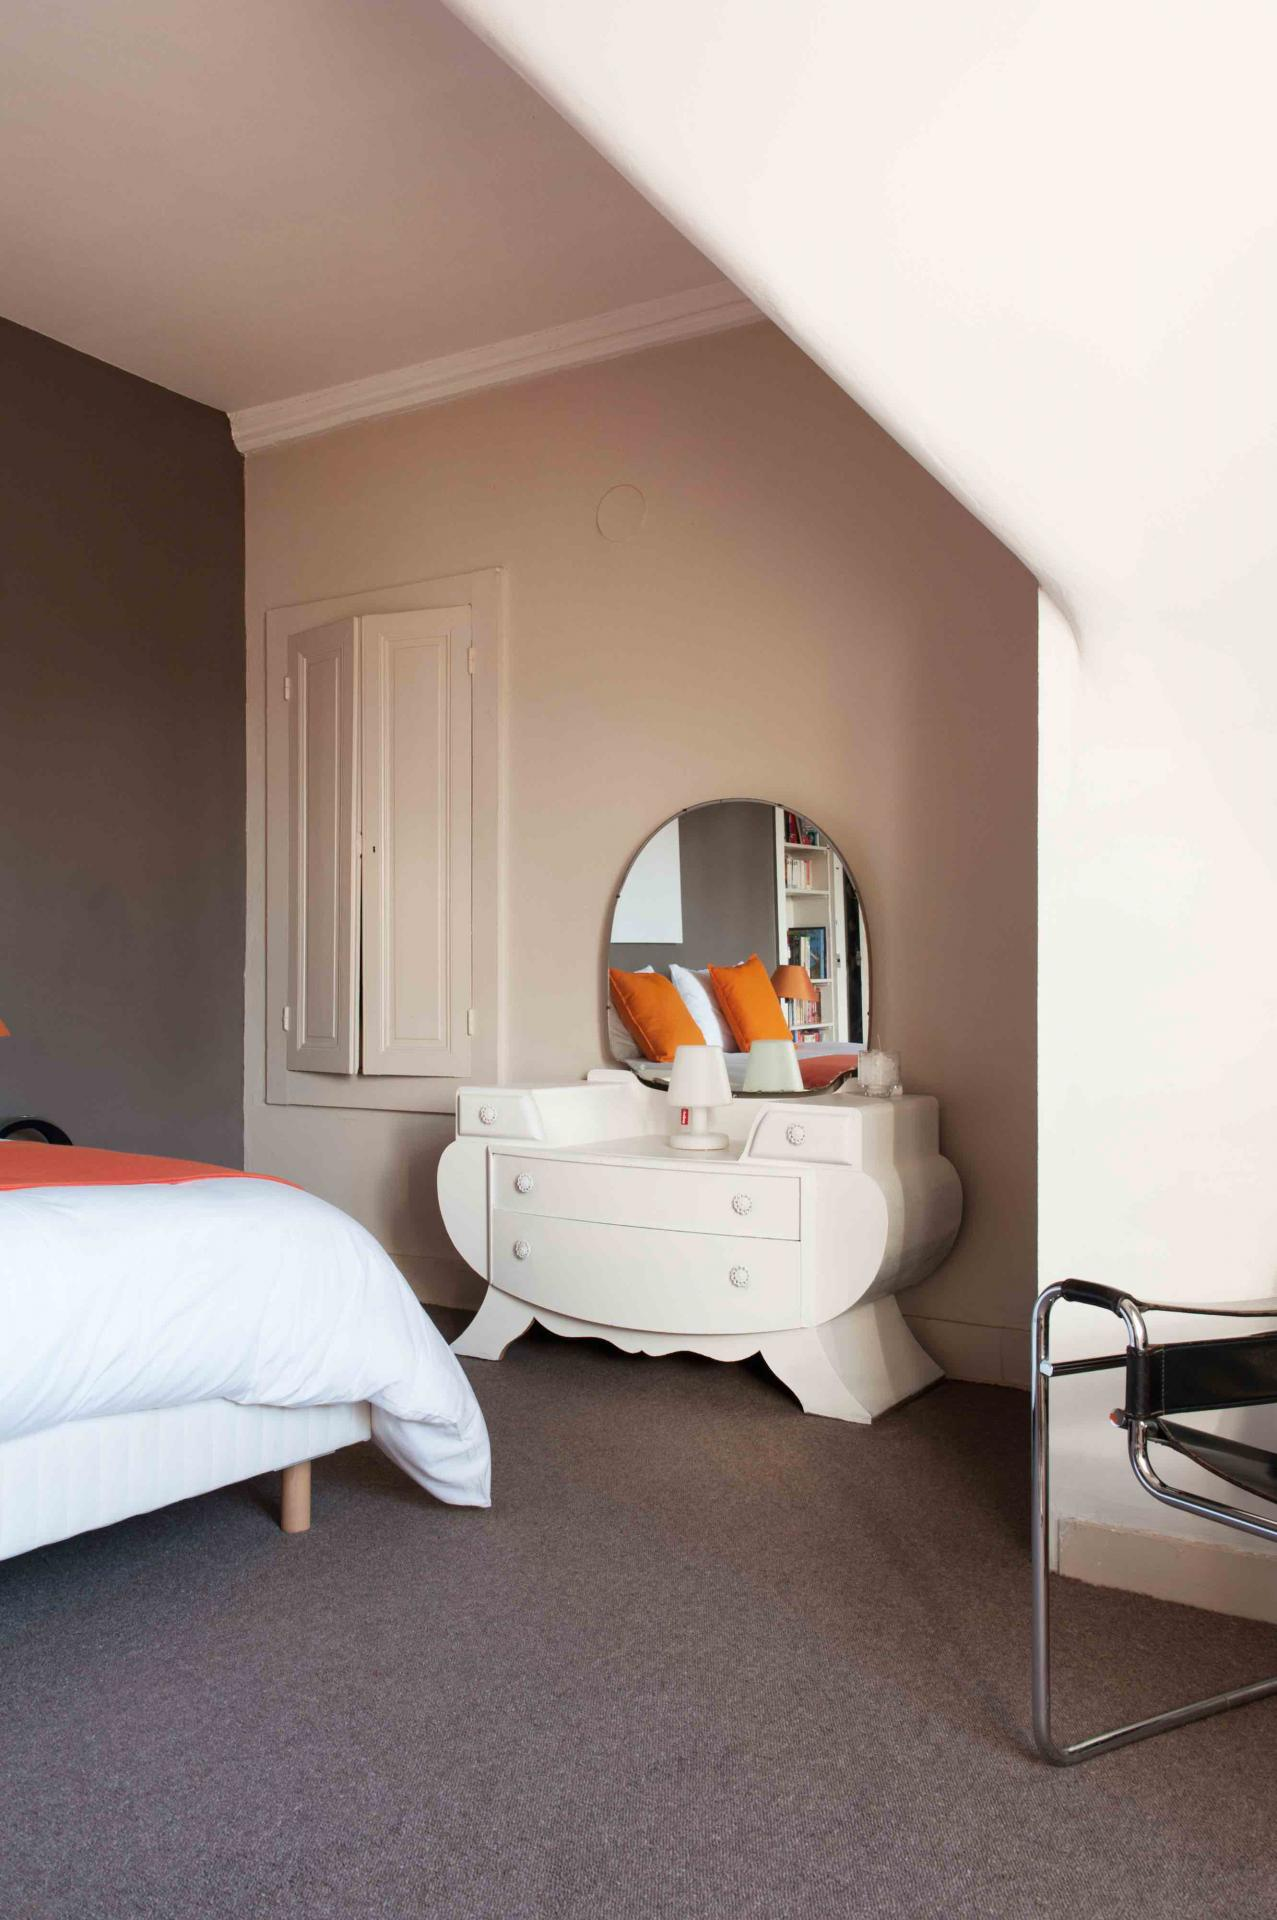 chambres d hotes a rennes